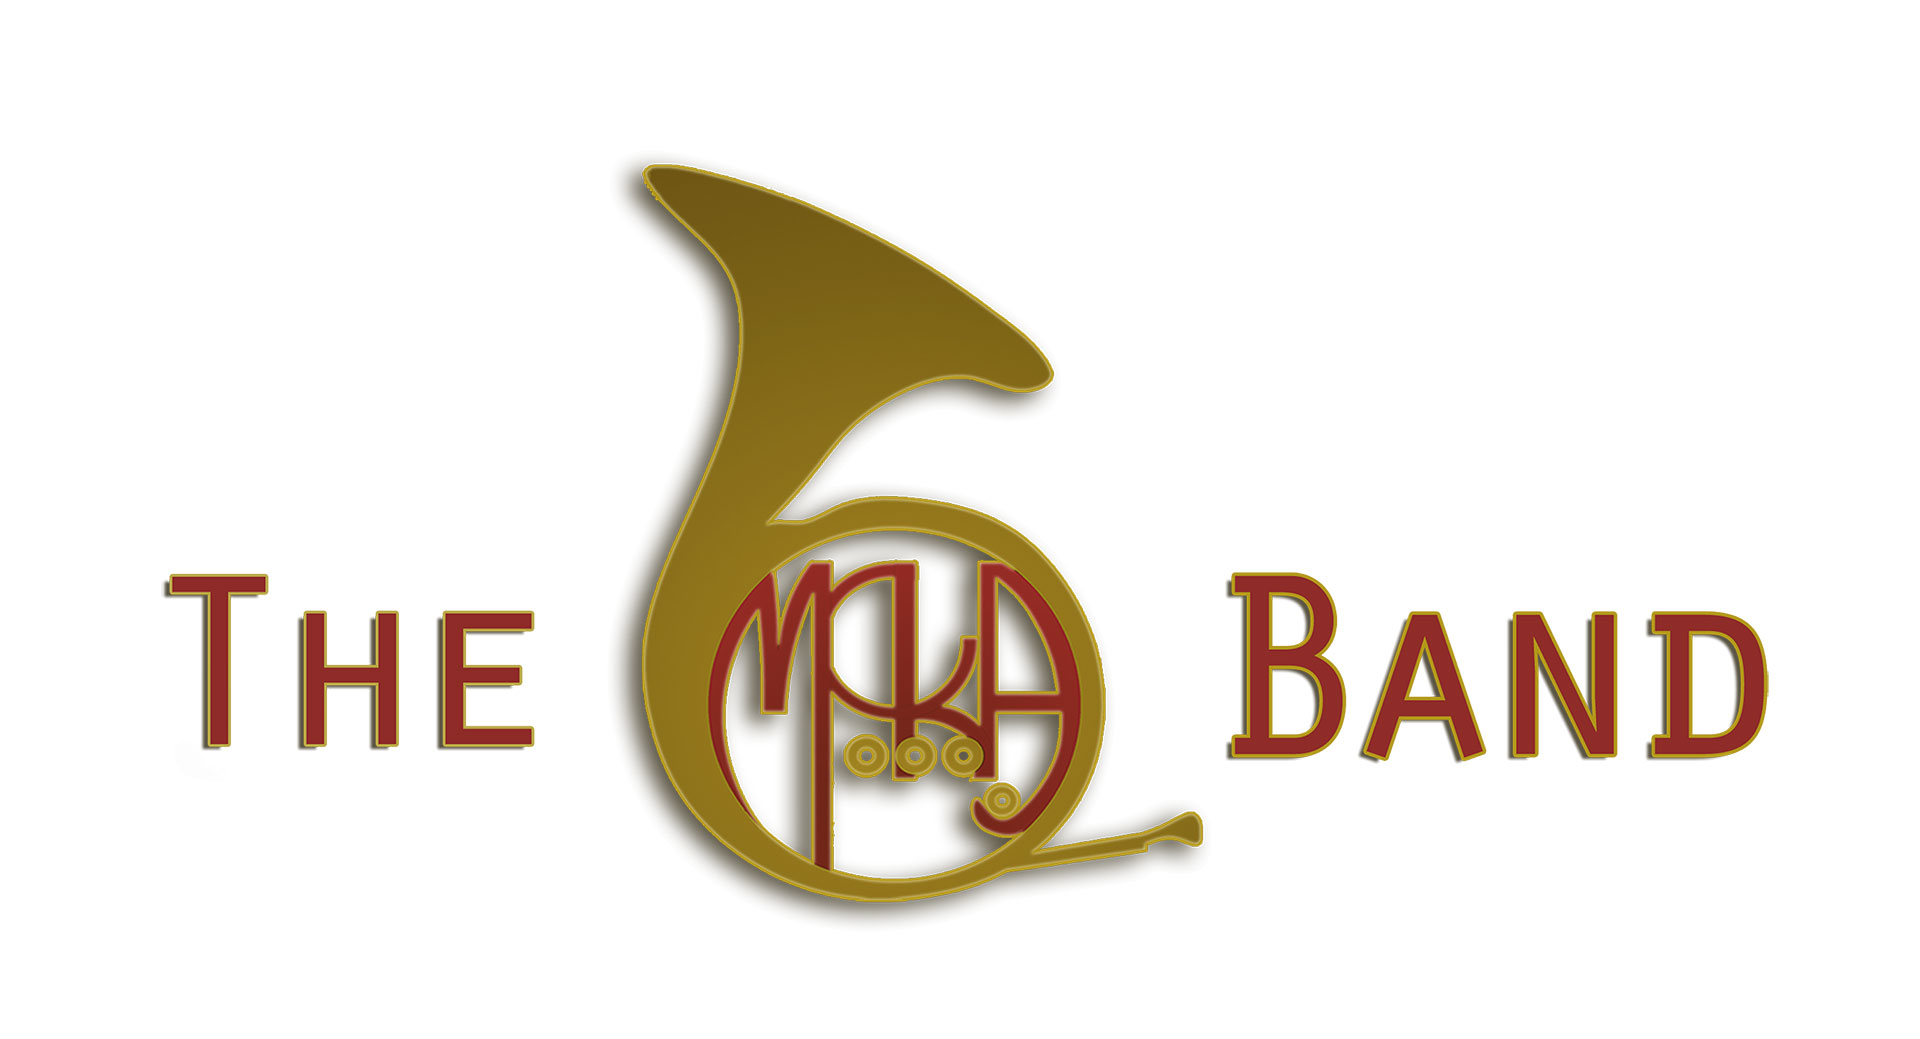 THE-MOKA-BAND-LOGO